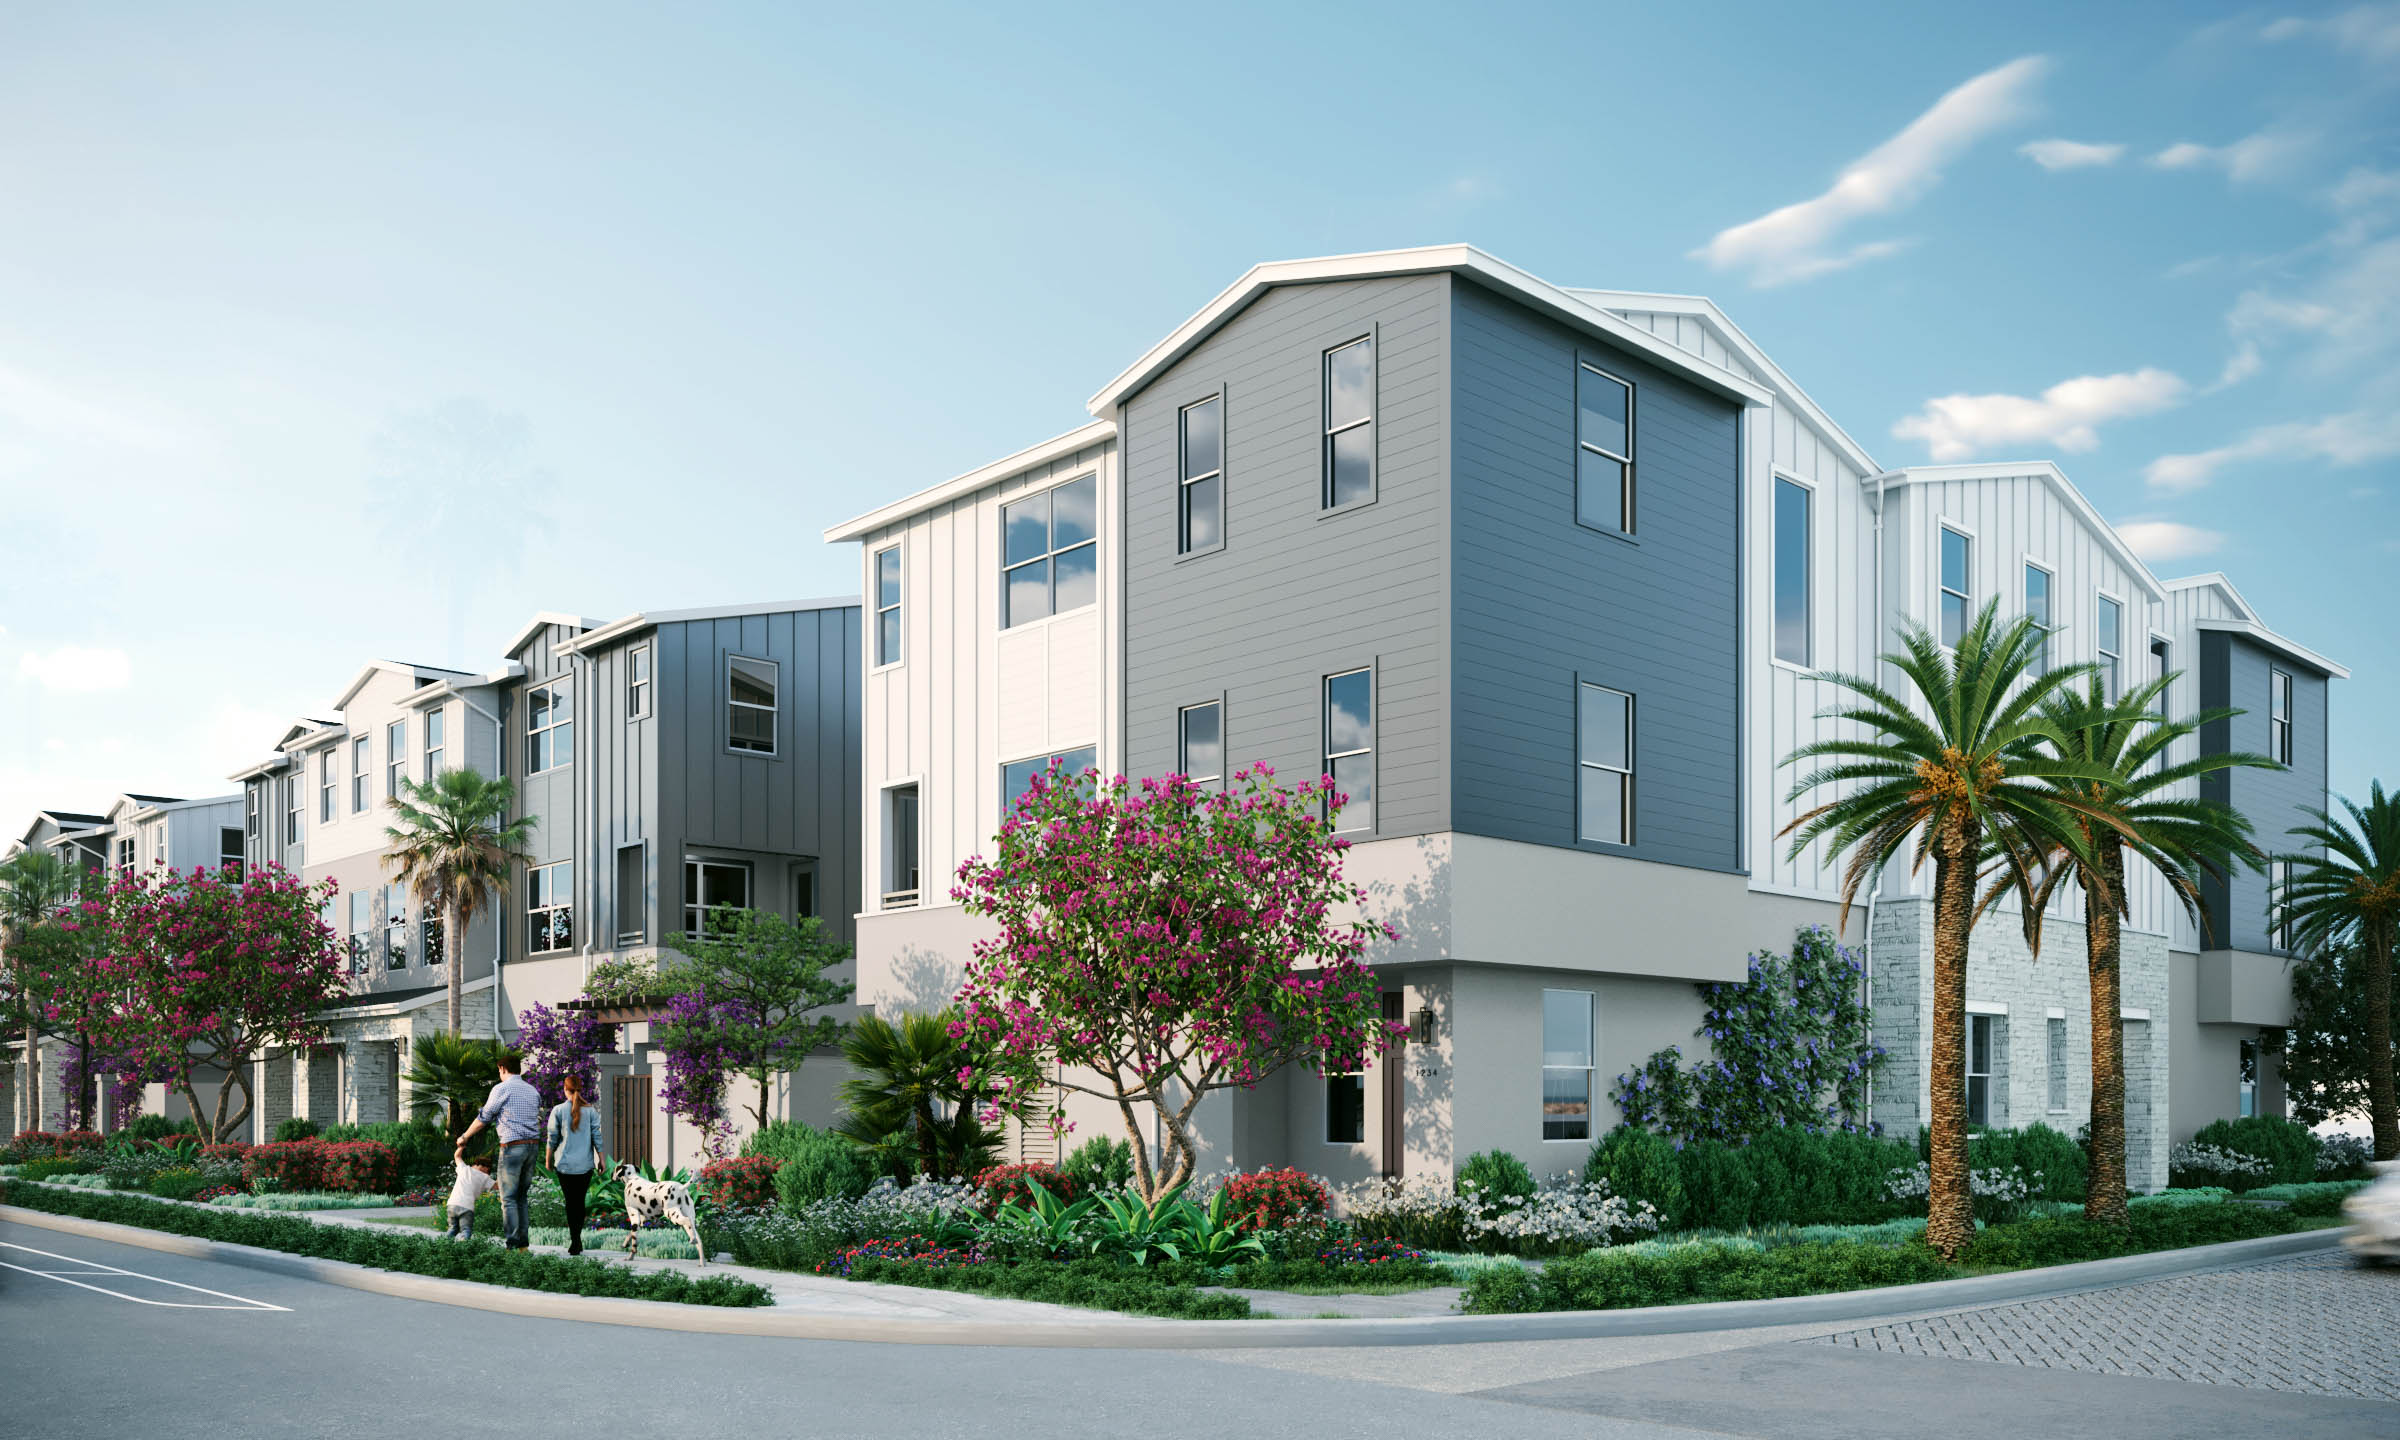 RENDERING REVEAL VIA INTRACORP